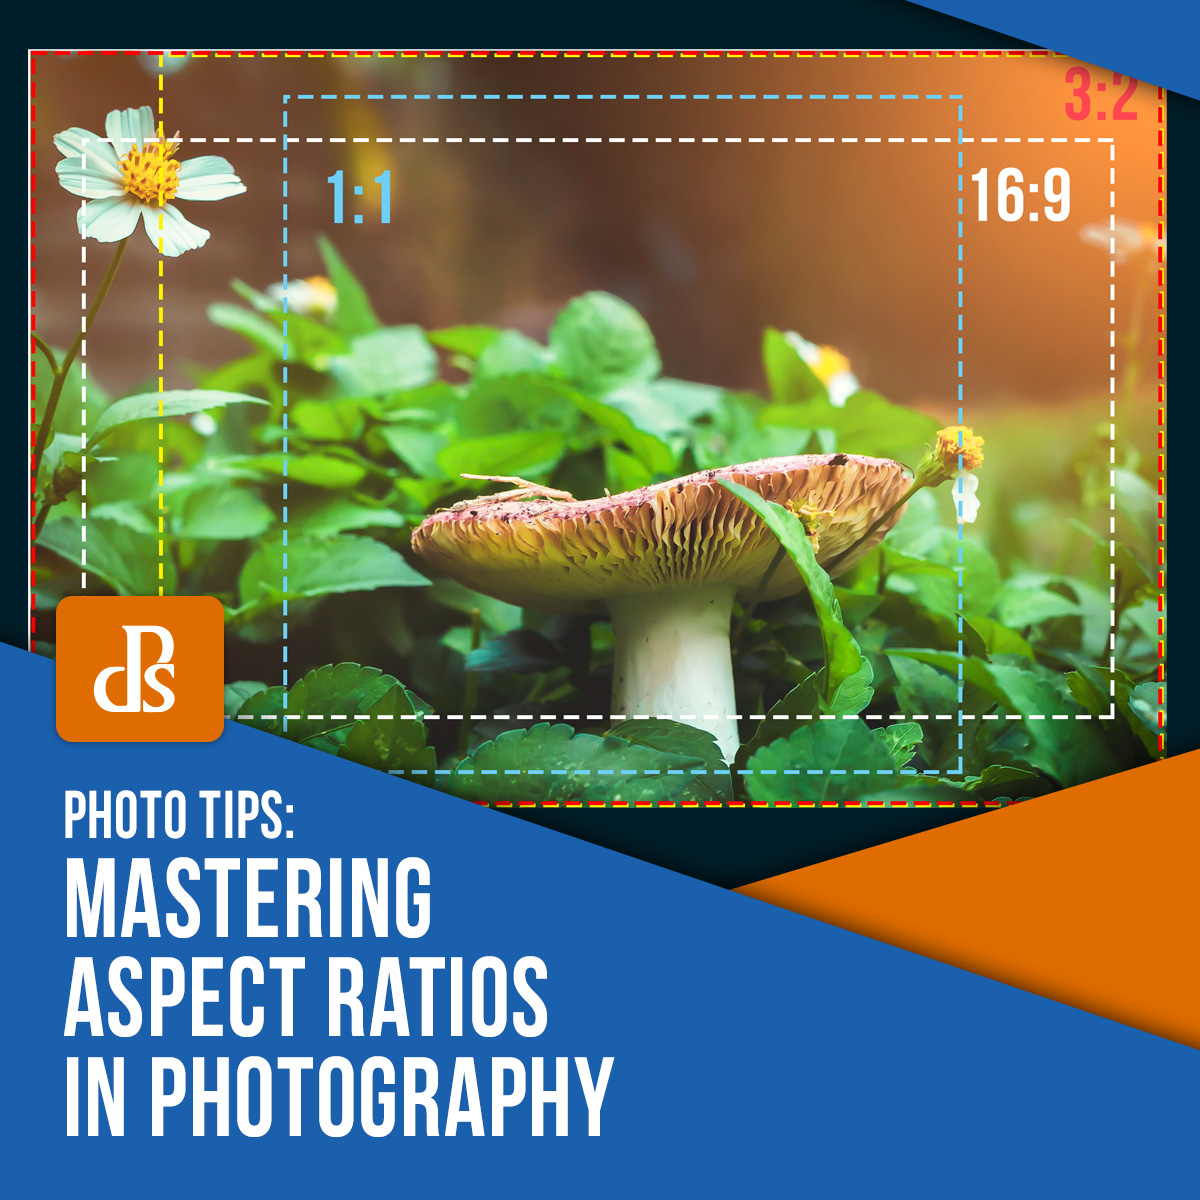 mastering aspect ratios in photography featured image